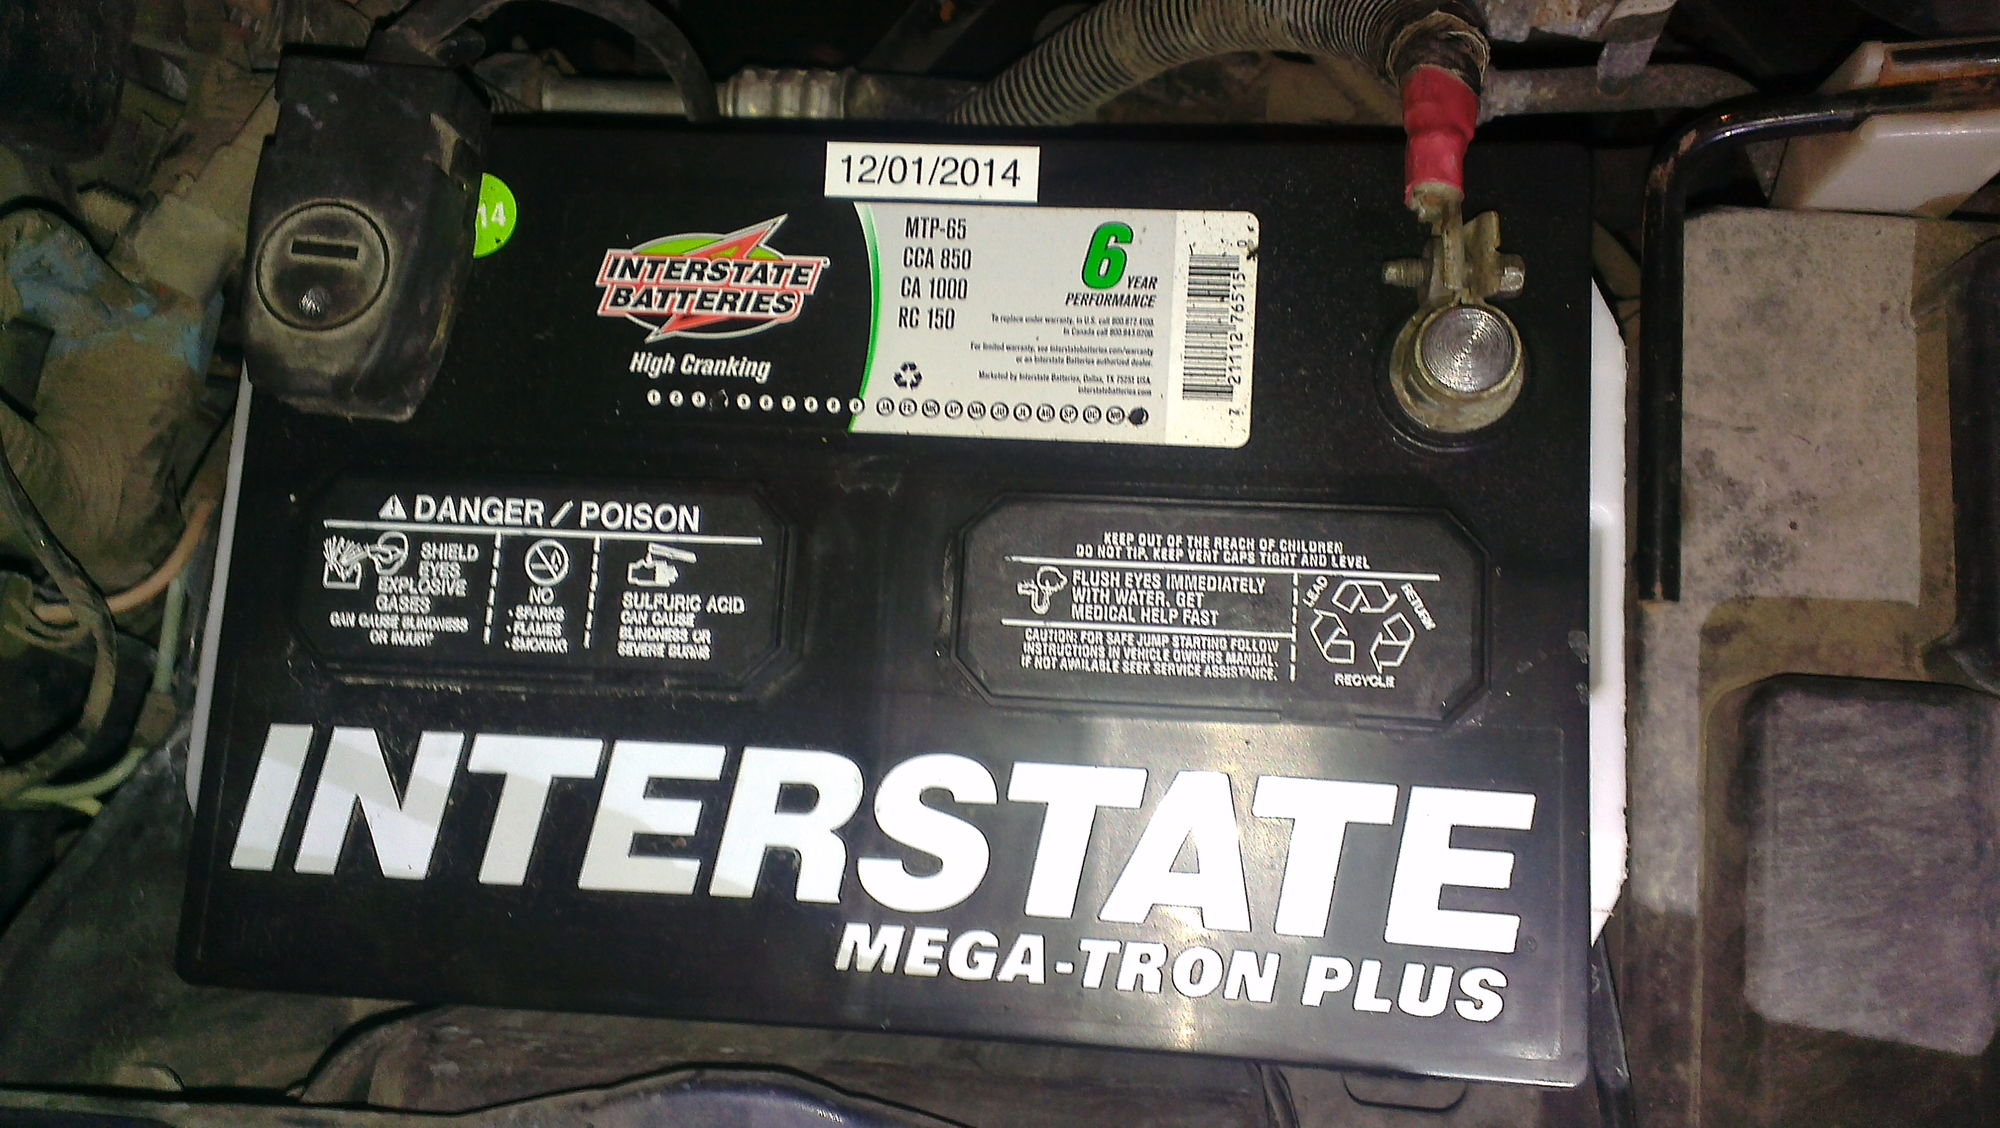 Cummins N14 Engine Wiring Diagram likewise 1997 Ford F 150 Charging System Diagram further 2016 Porsche Macan Turbo further 2008 GMC Acadia Battery Location as well Jeep Cherokee Front Drive Shaft Parts. on 1998 ford f 150 battery